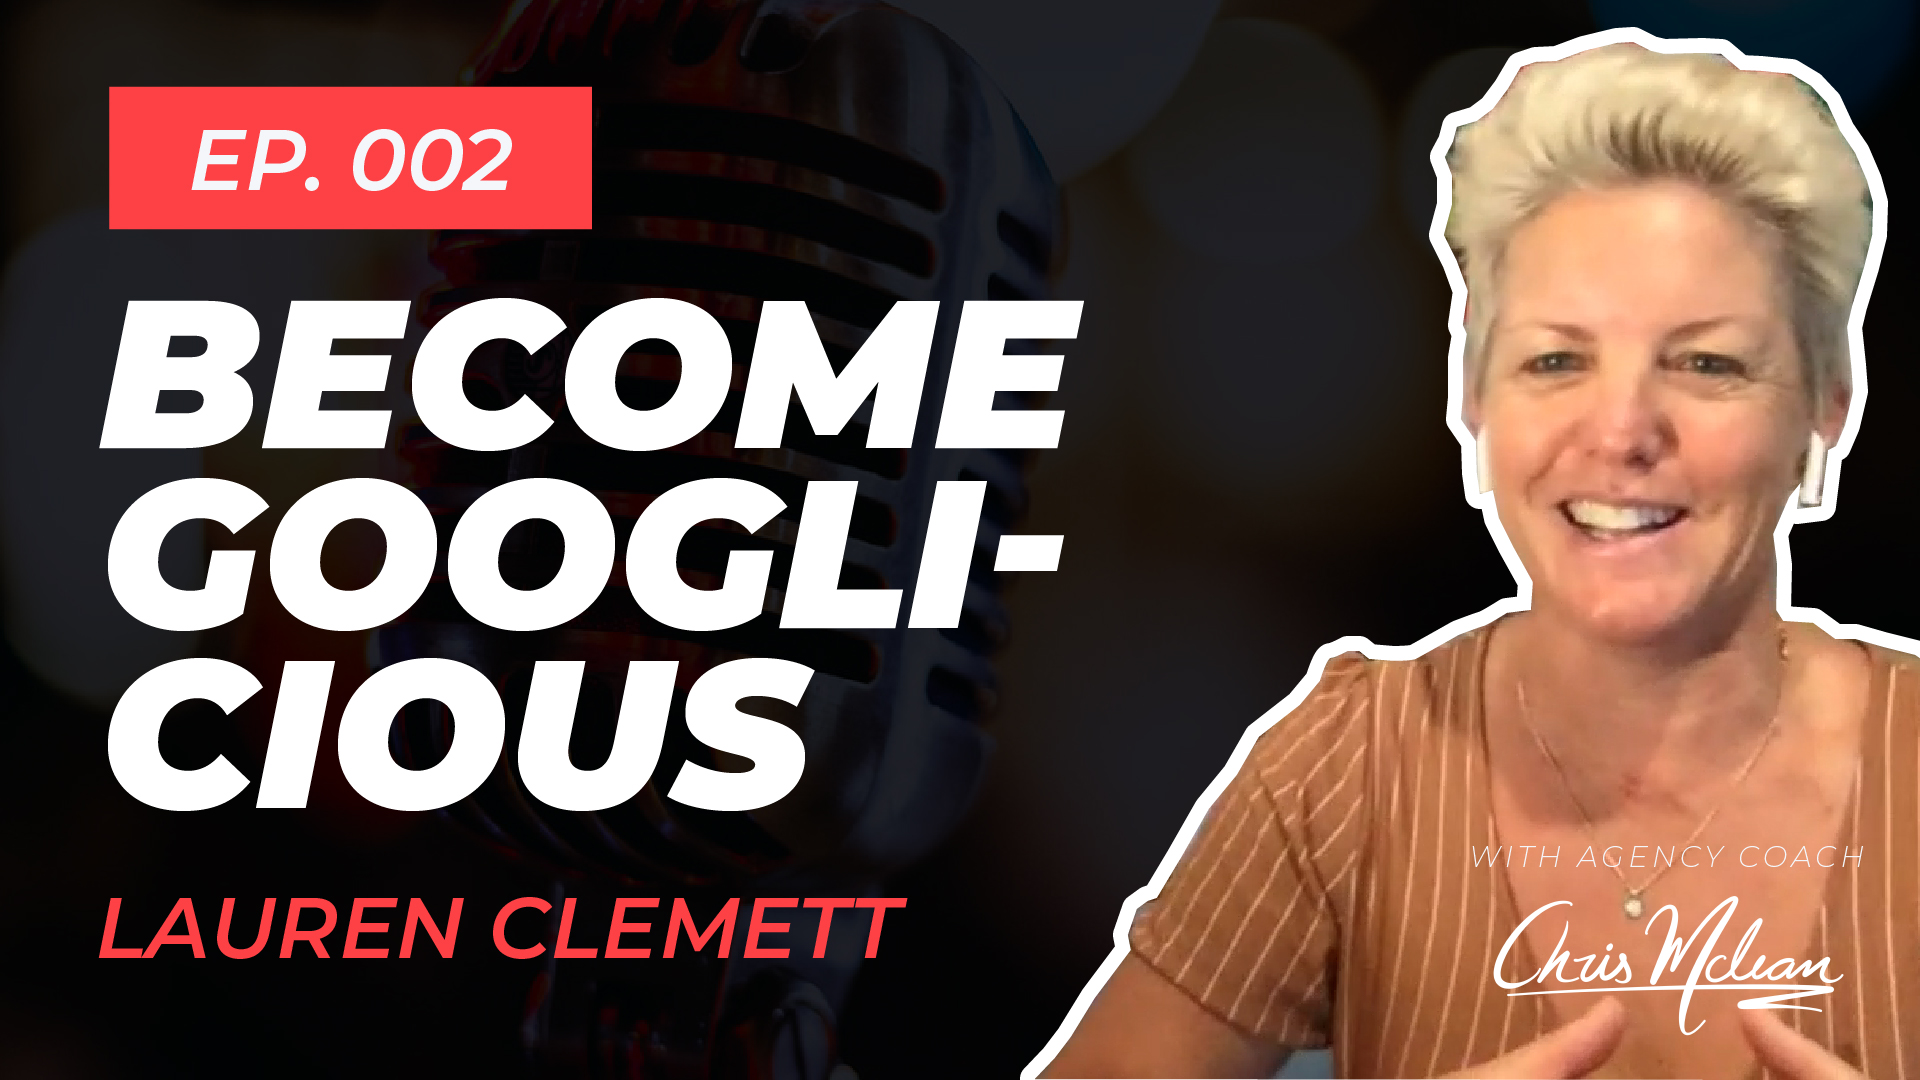 EP002 | Build Your Influence & Become Googlicious with Lauren Clemett